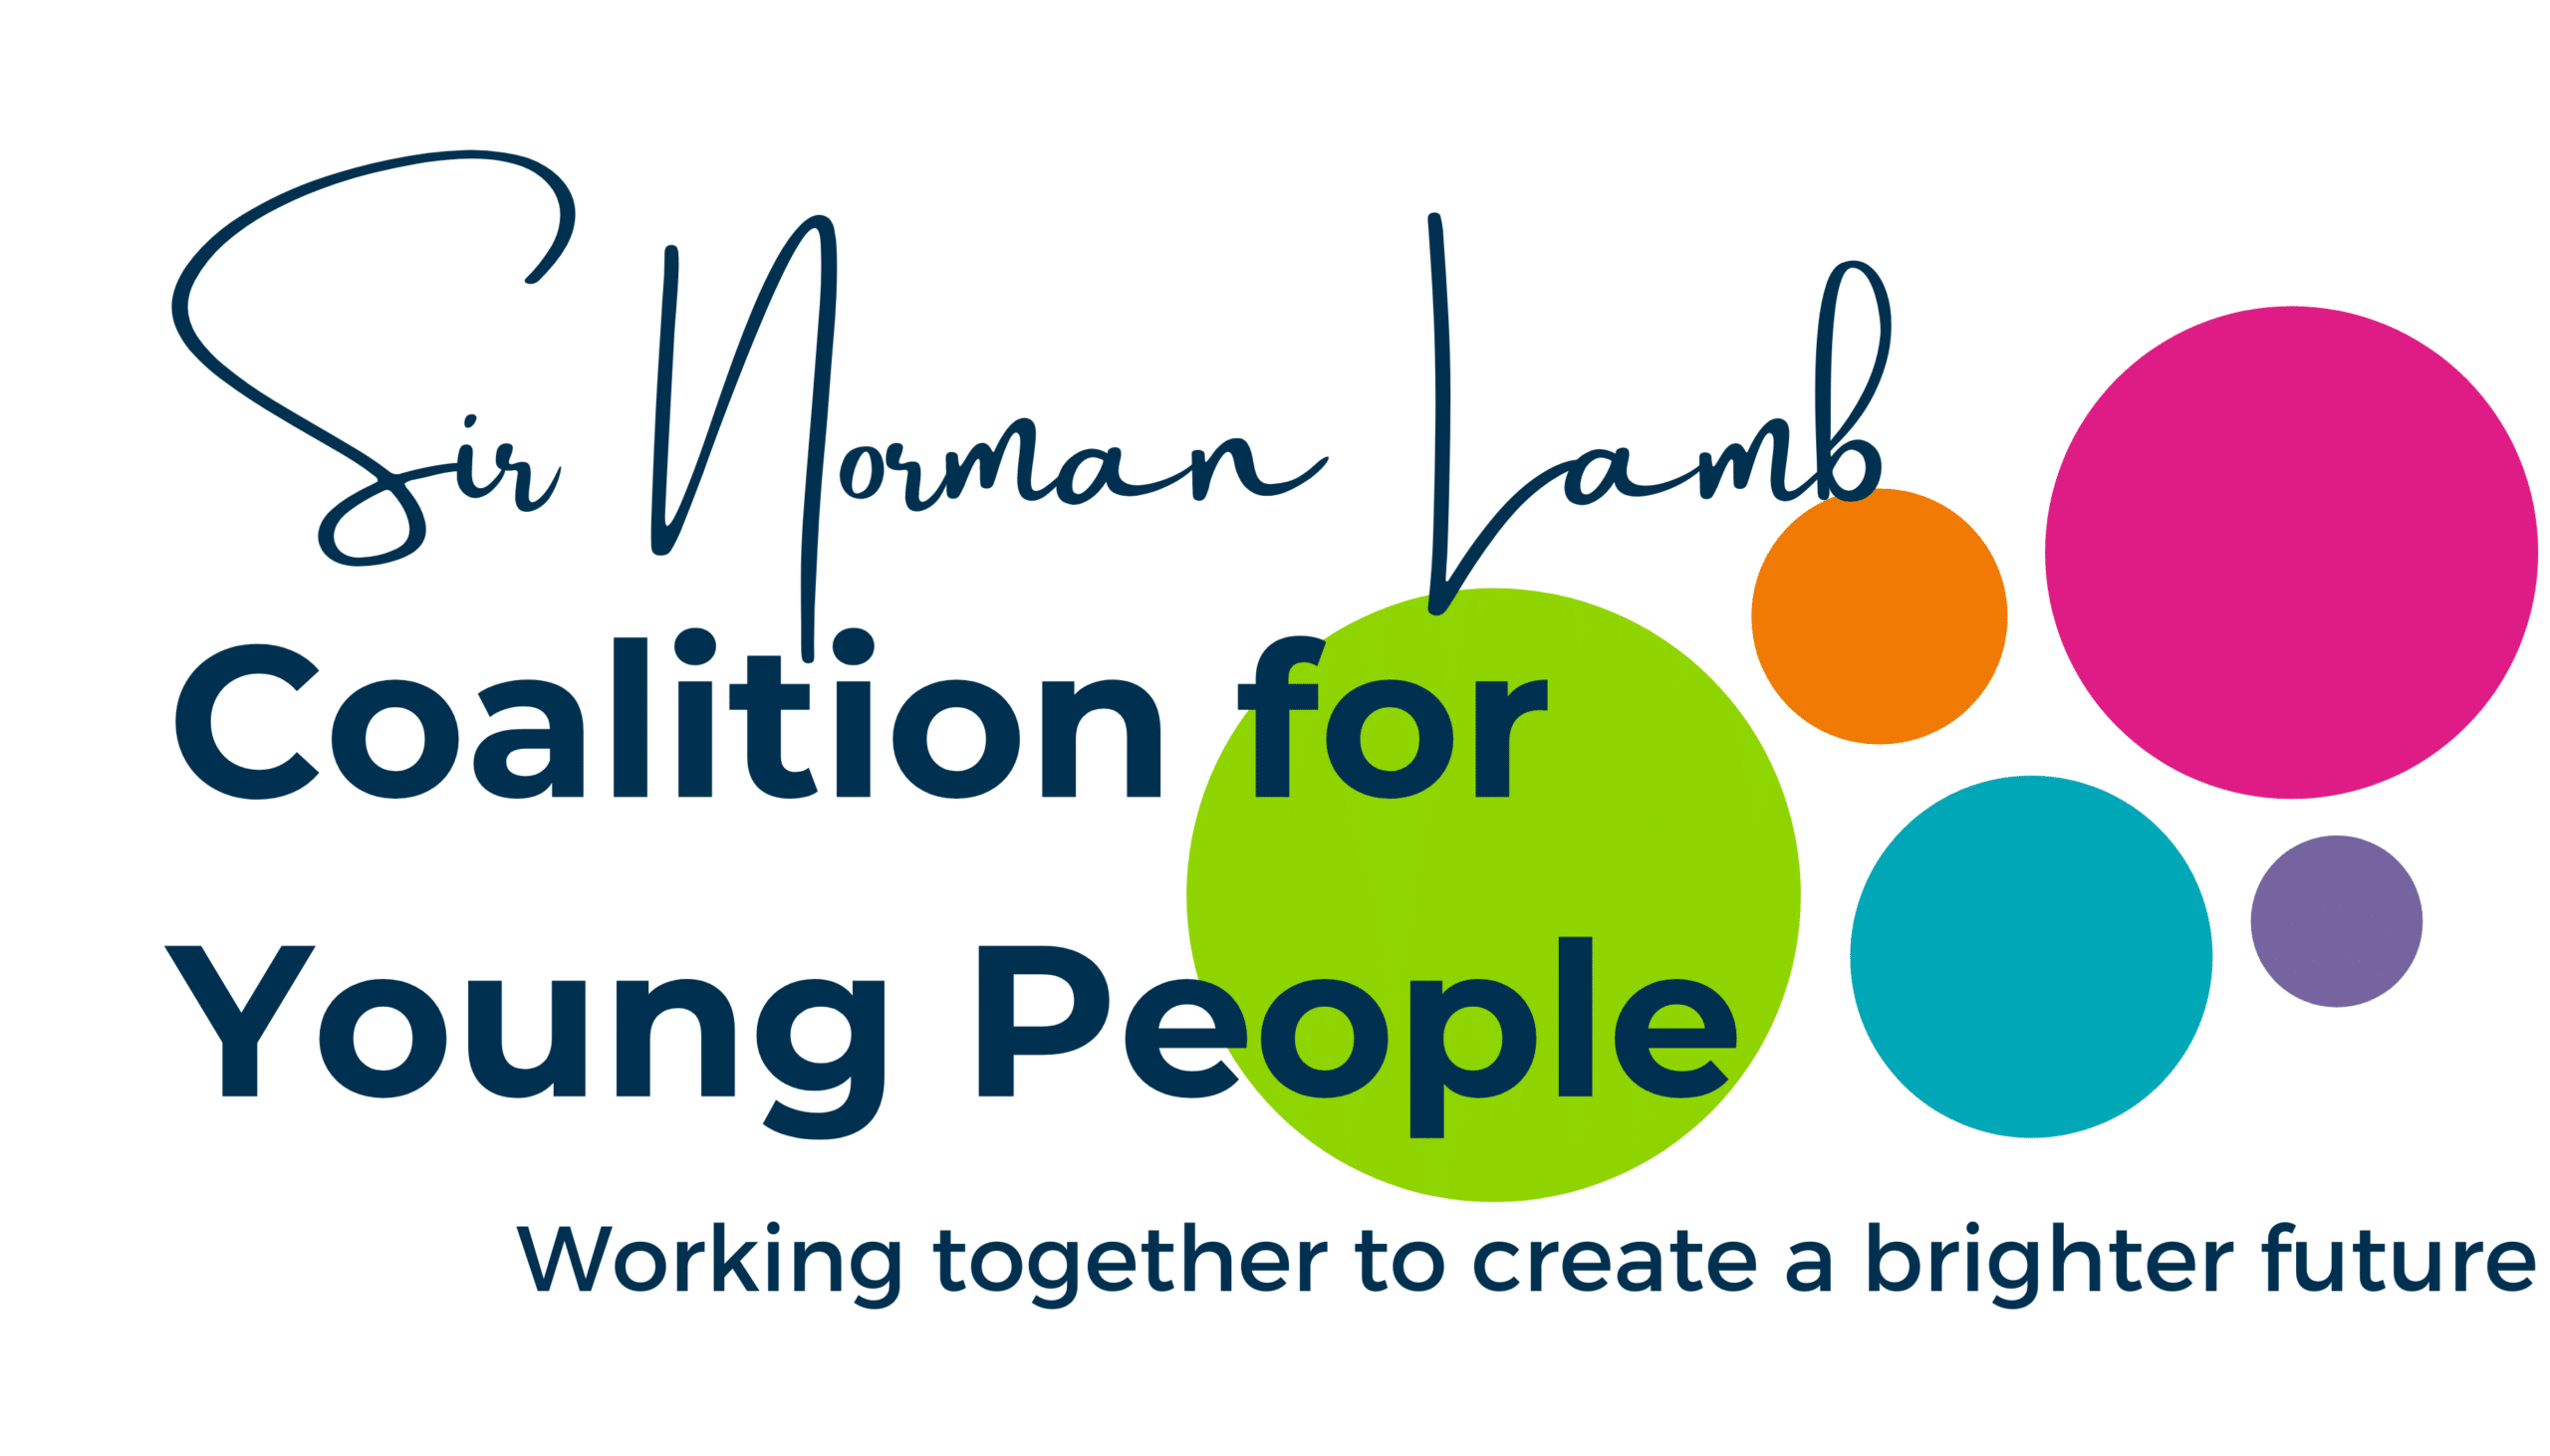 Sir Norman Lamb Coalition for young people logo